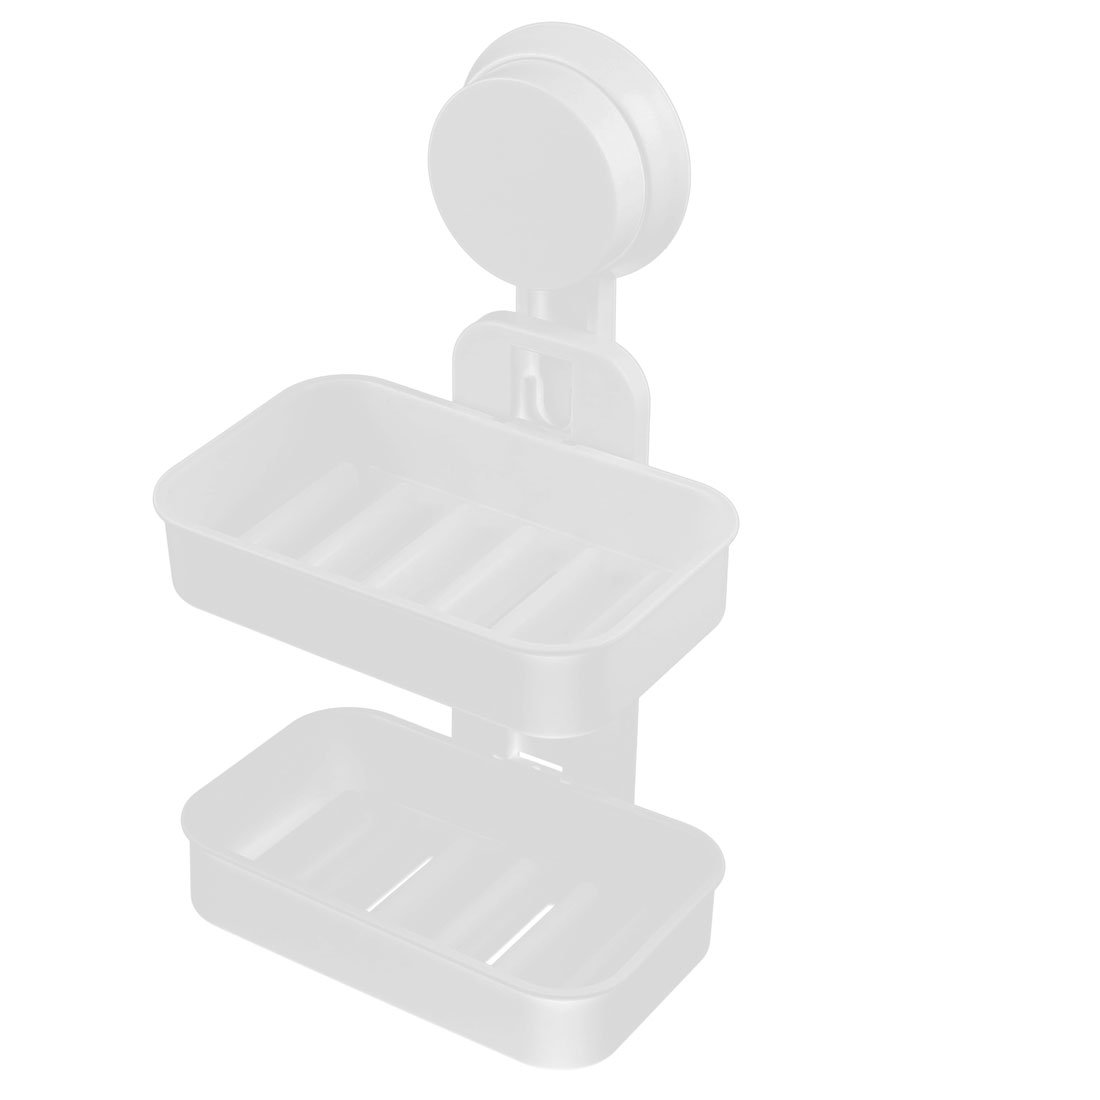 Household Bathroom Plastic 2 Layers Wall Suction Disc Soap Holder Container Box White